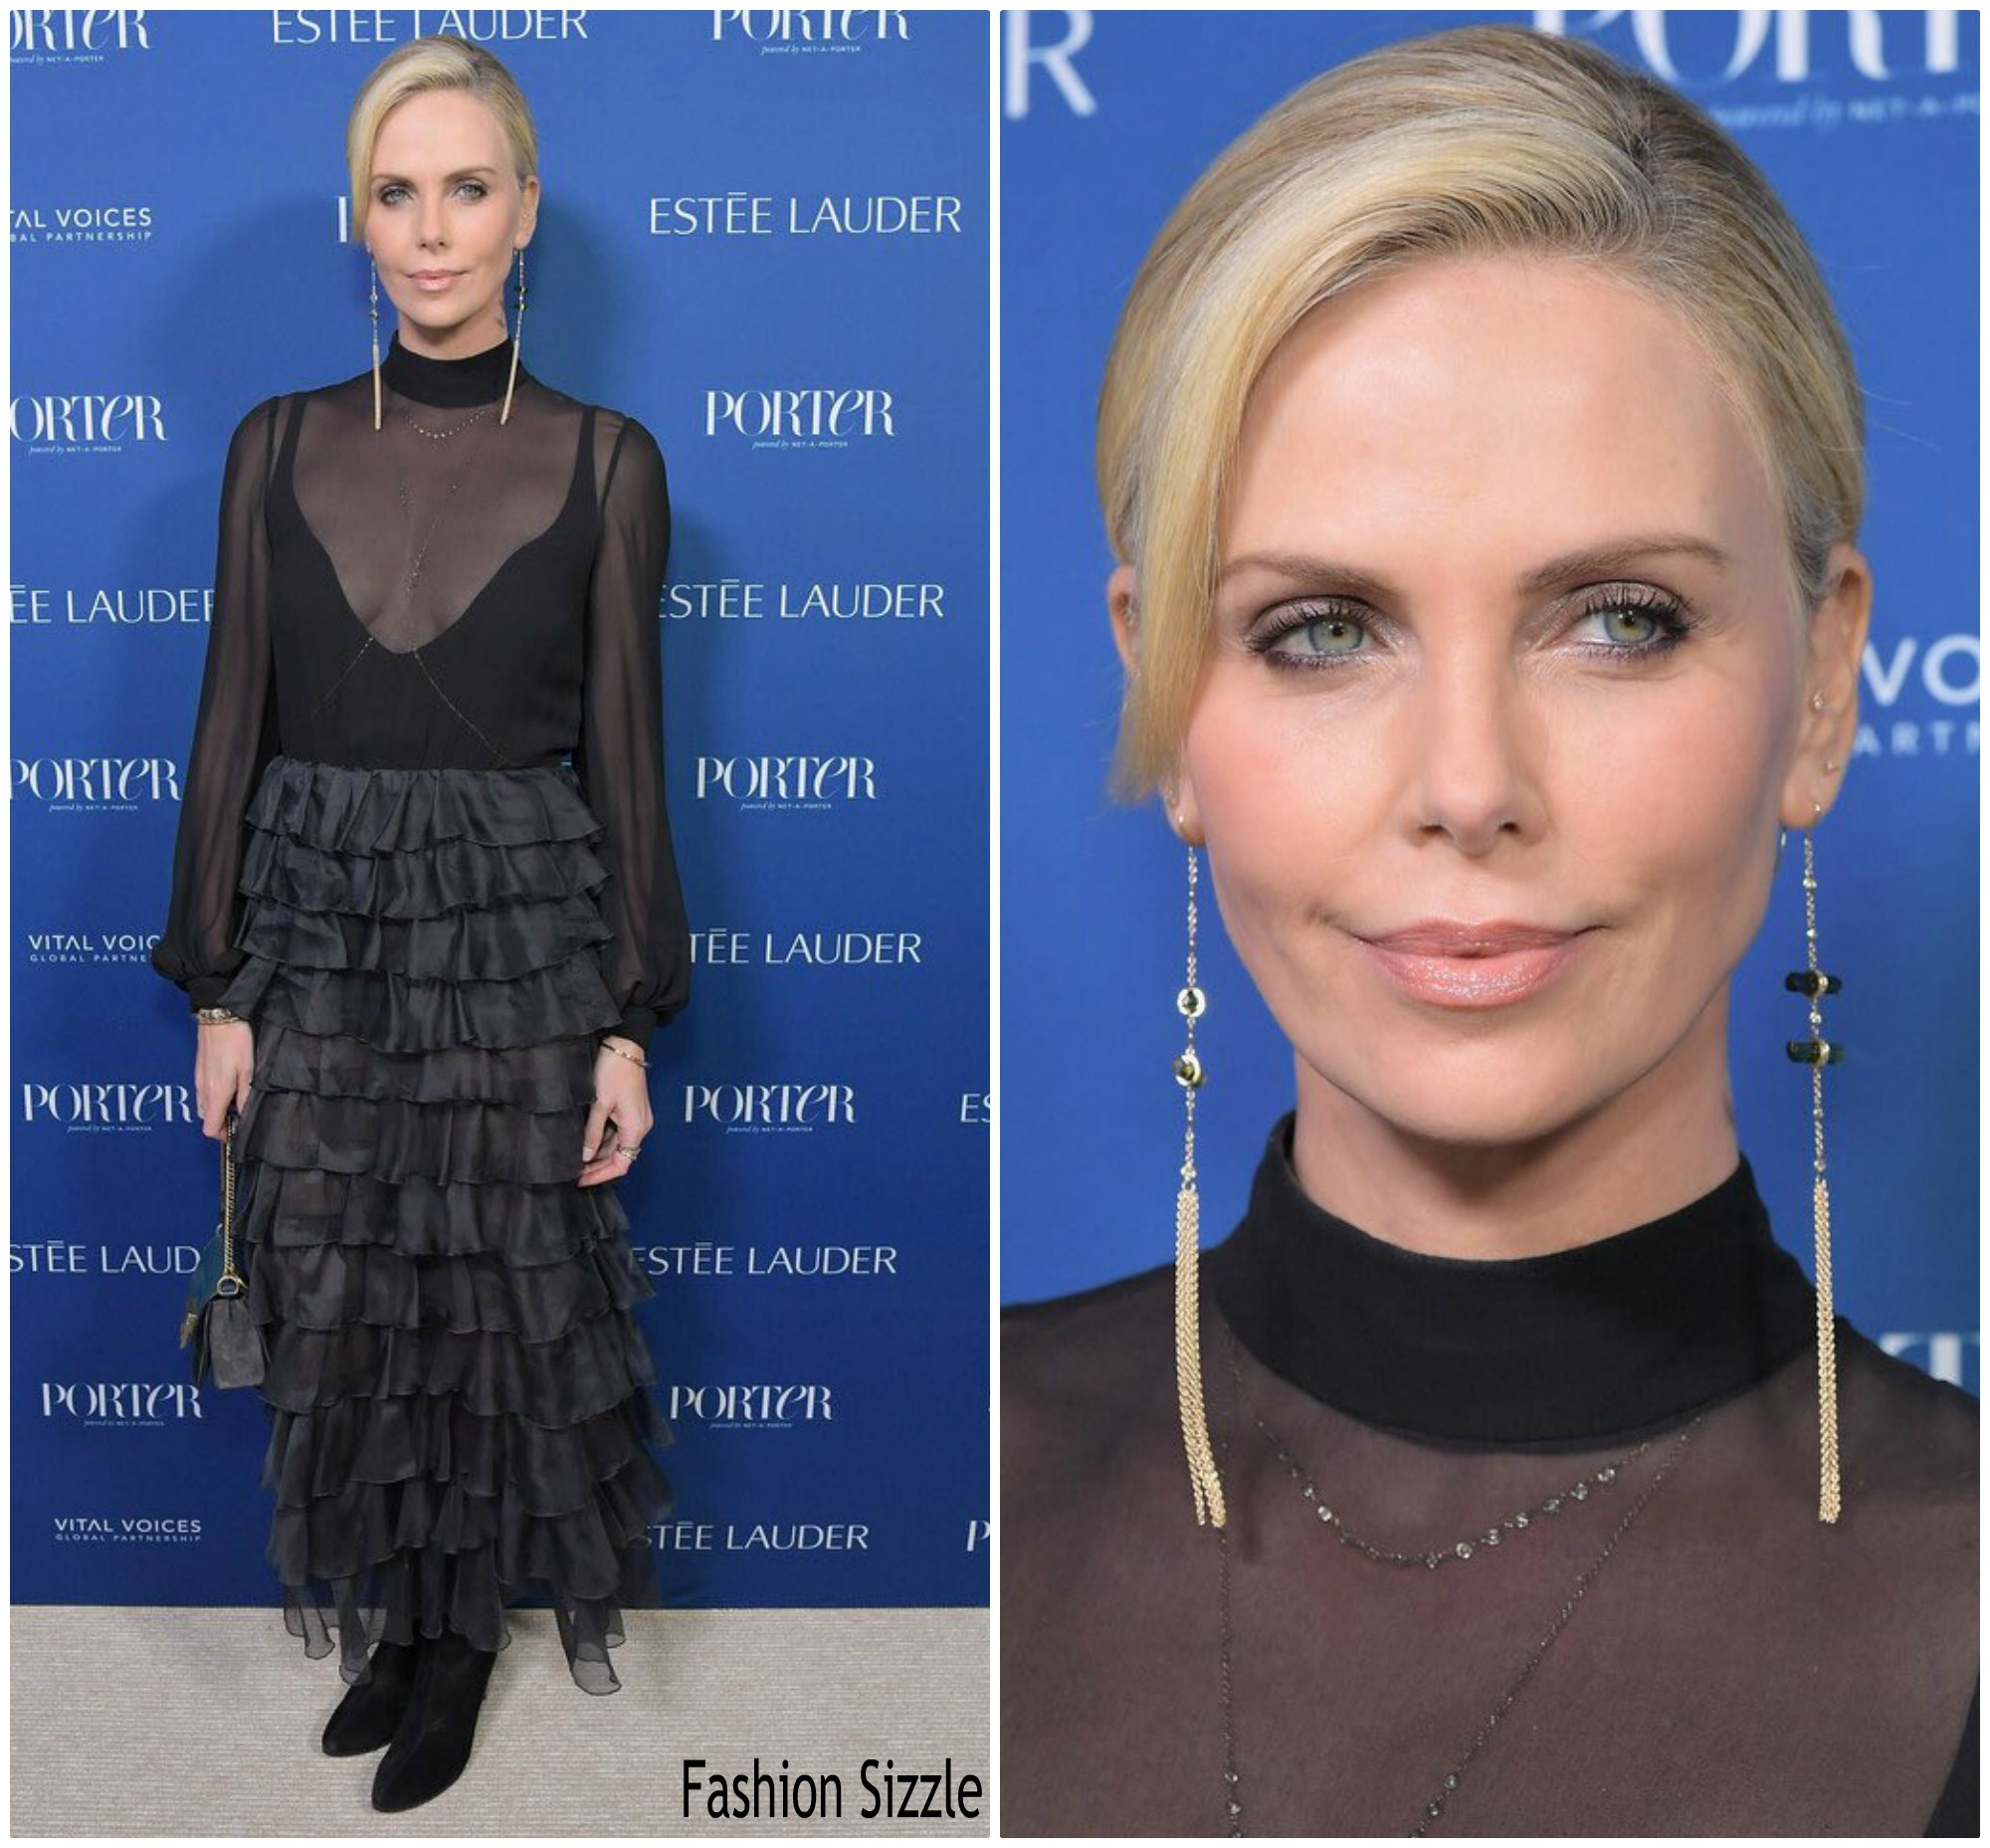 charlize-theron-in-giambattista-valli-porter-incredible-woman-gala-2018